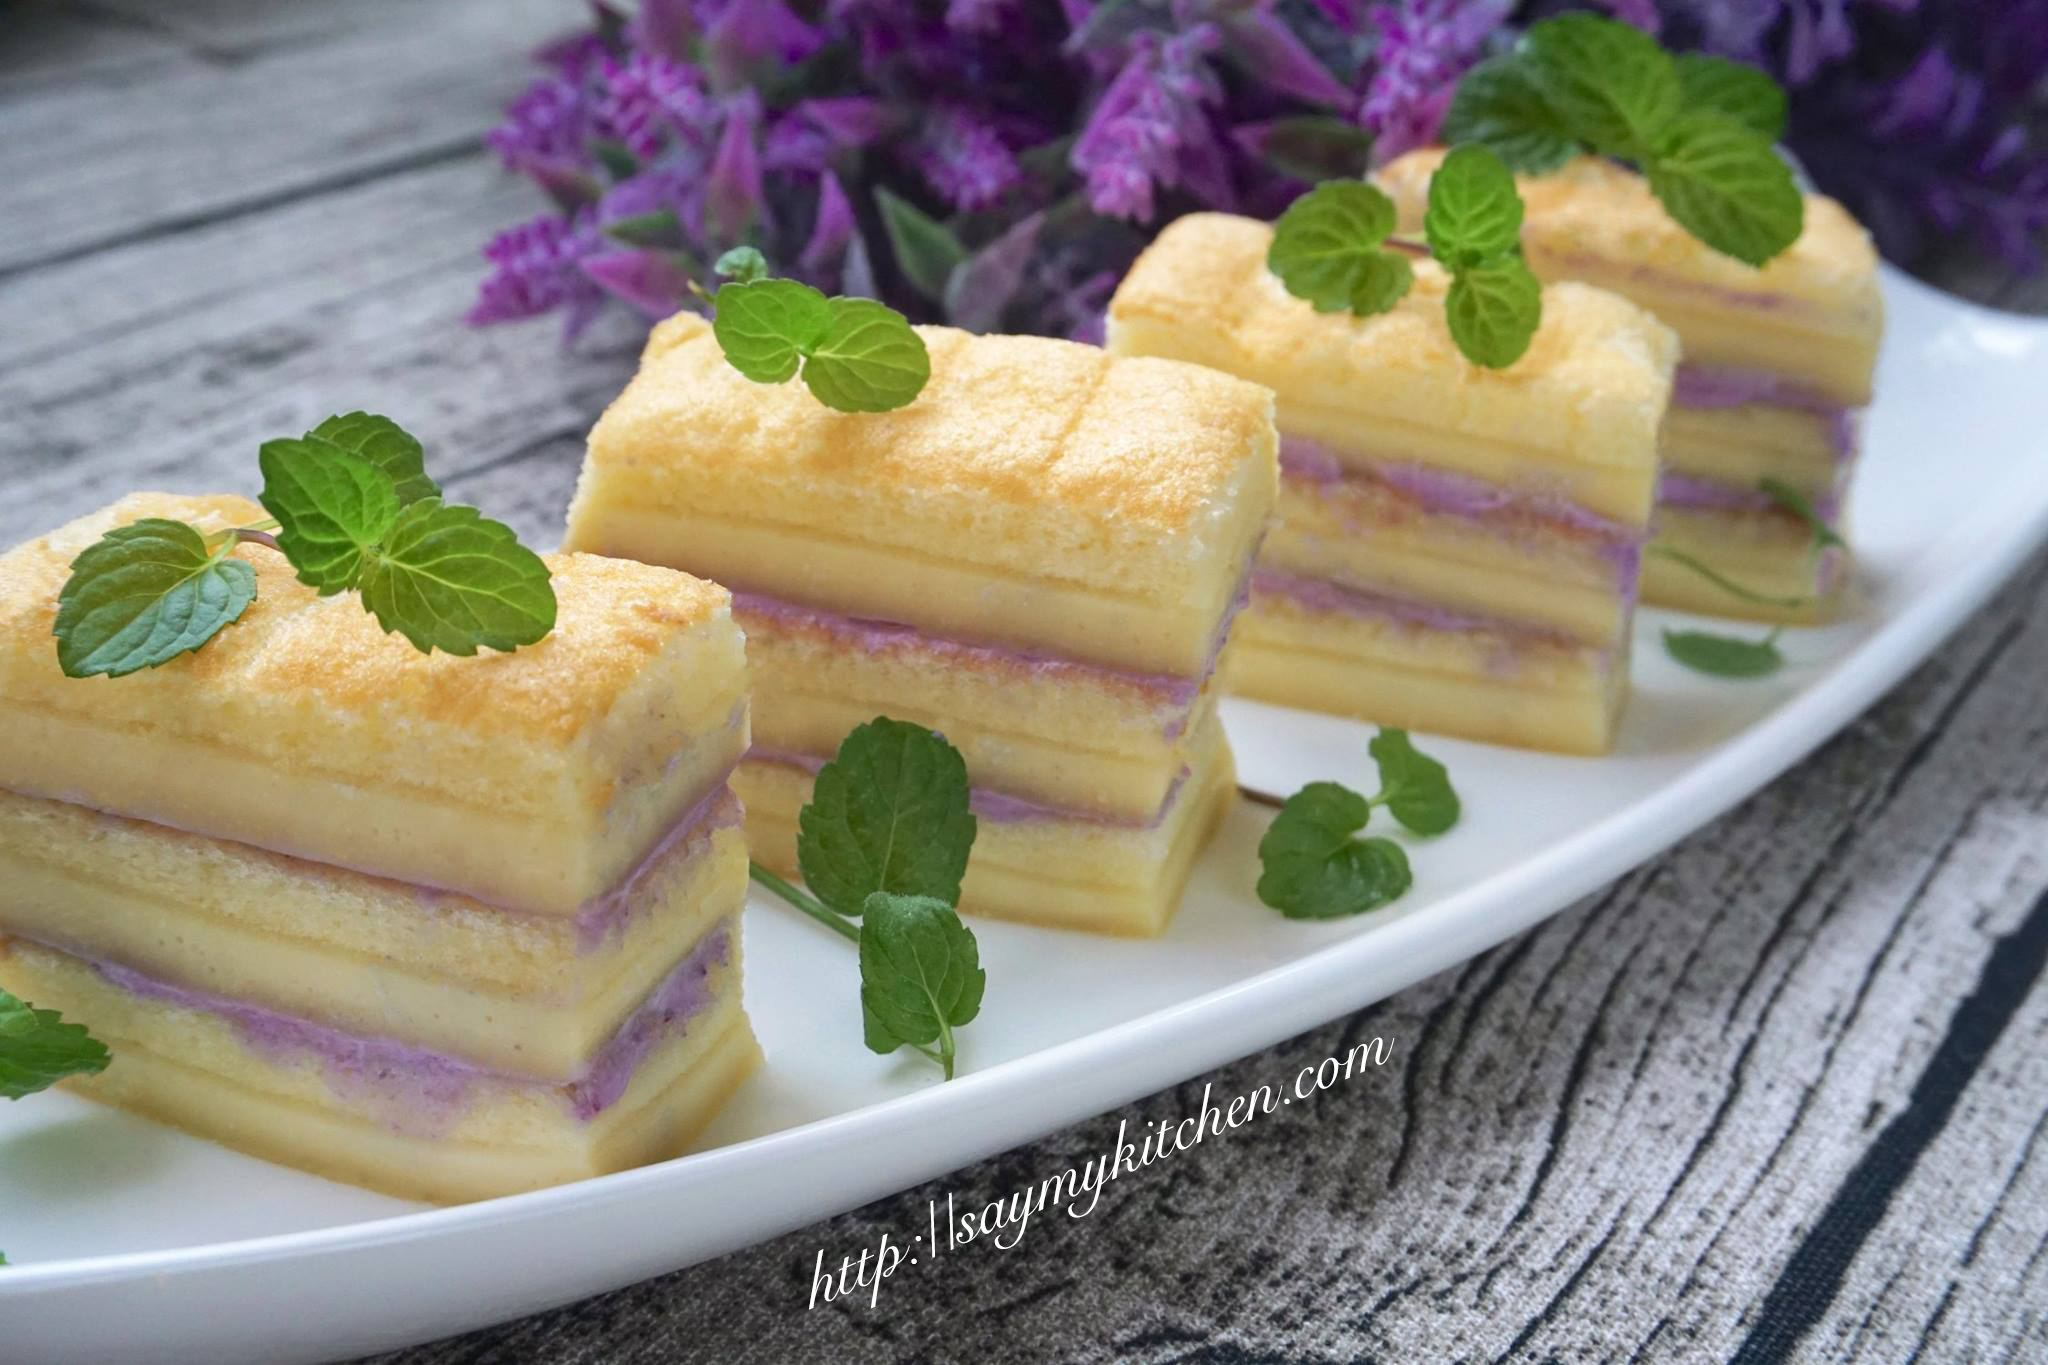 Layered Japanese Cotton Soft Cake 另类日式棉花蛋糕